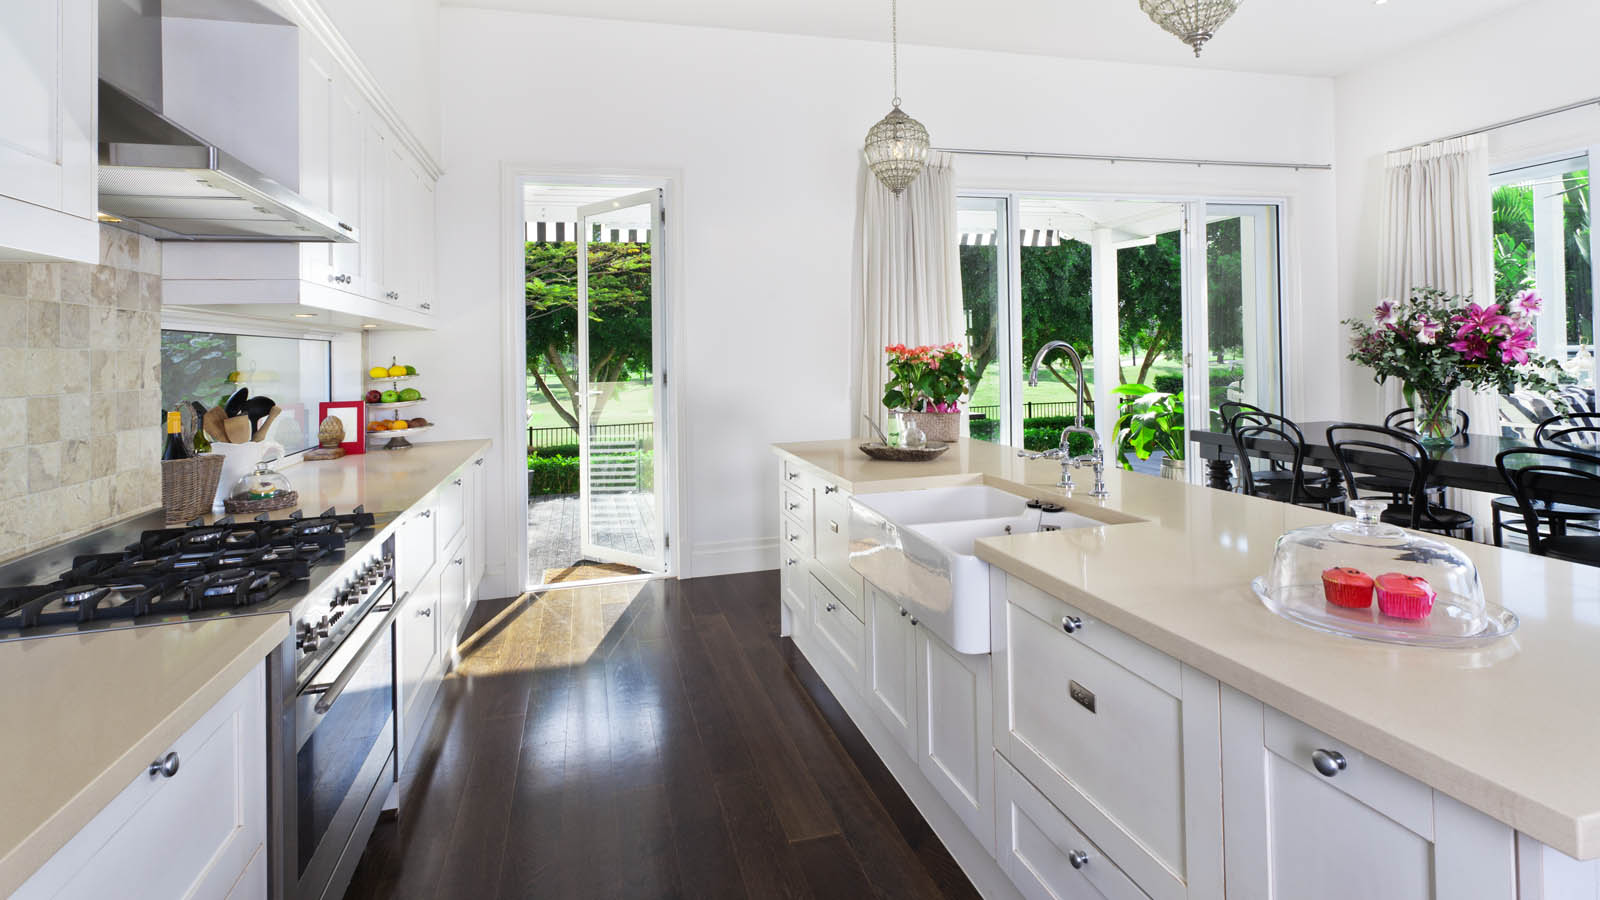 House Cleaning Areas